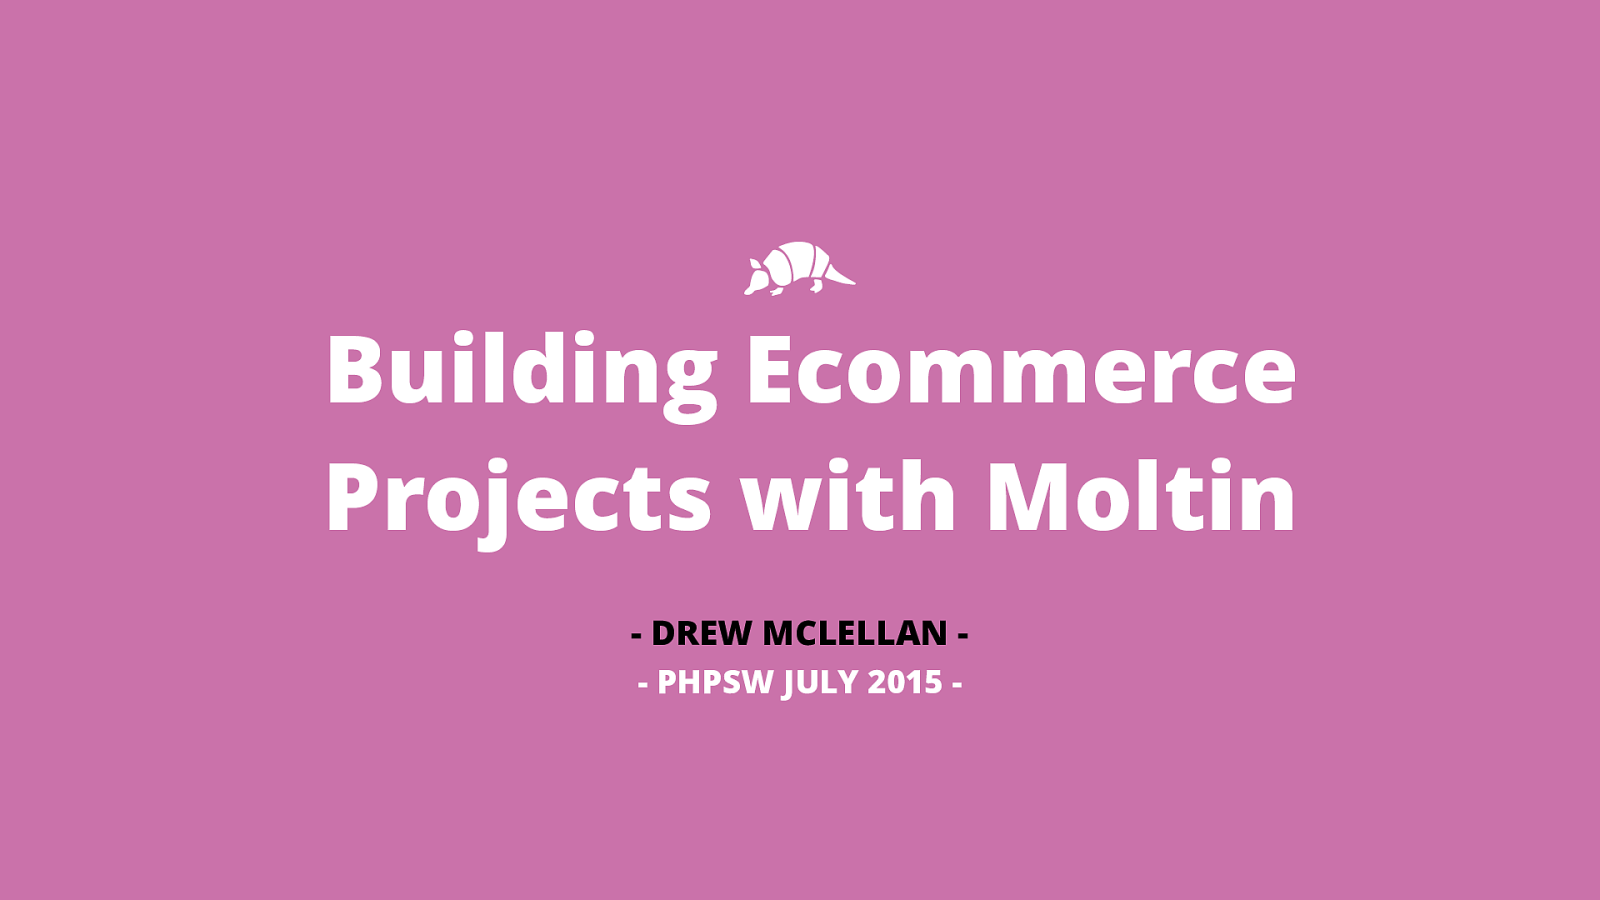 Building Ecommerce Projects with Moltin